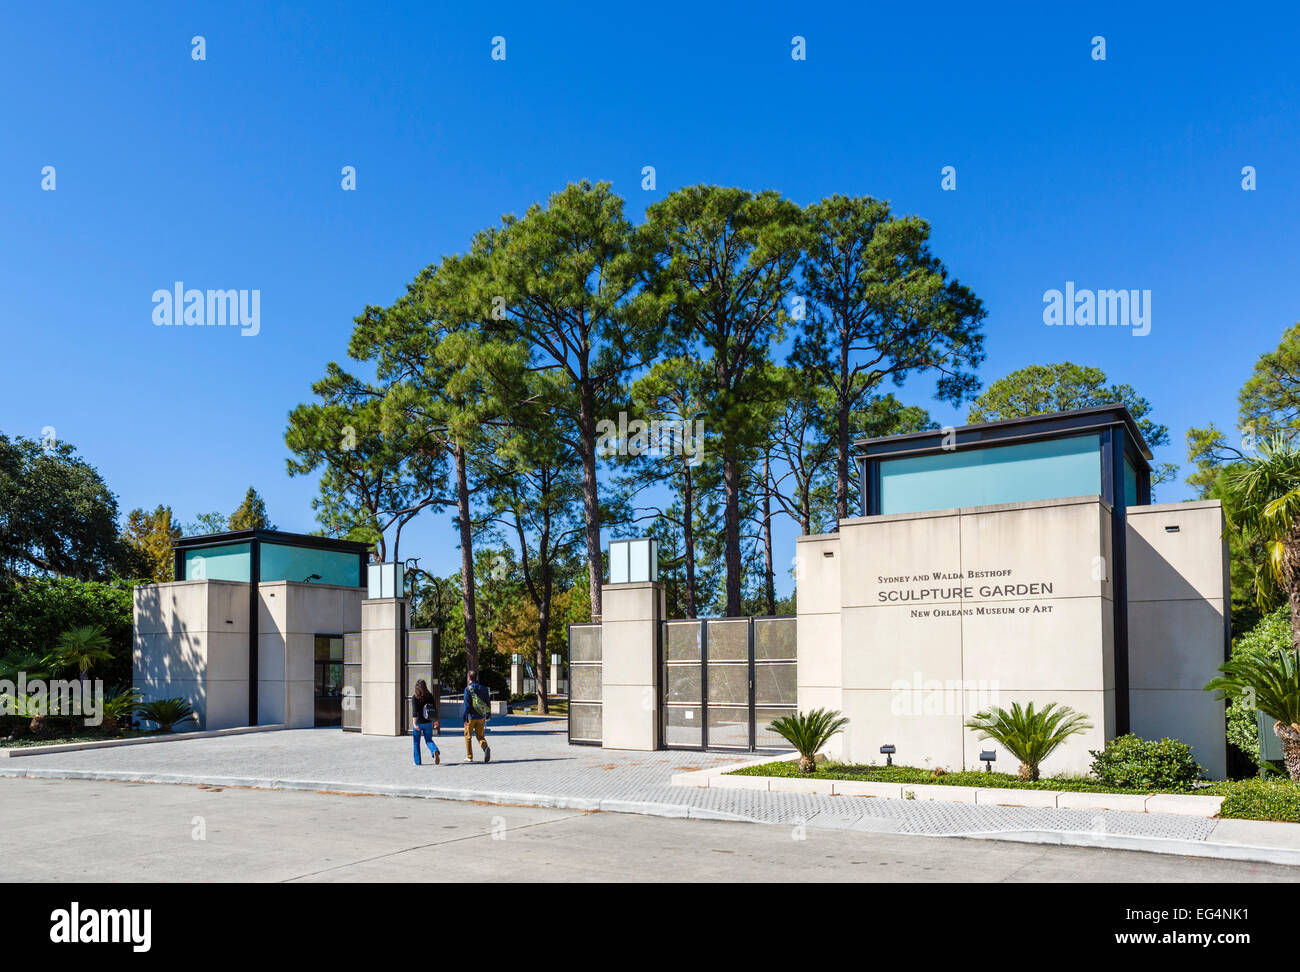 Entrance to the Sydney and Walda Besthoff Sculpture Garden, New ...